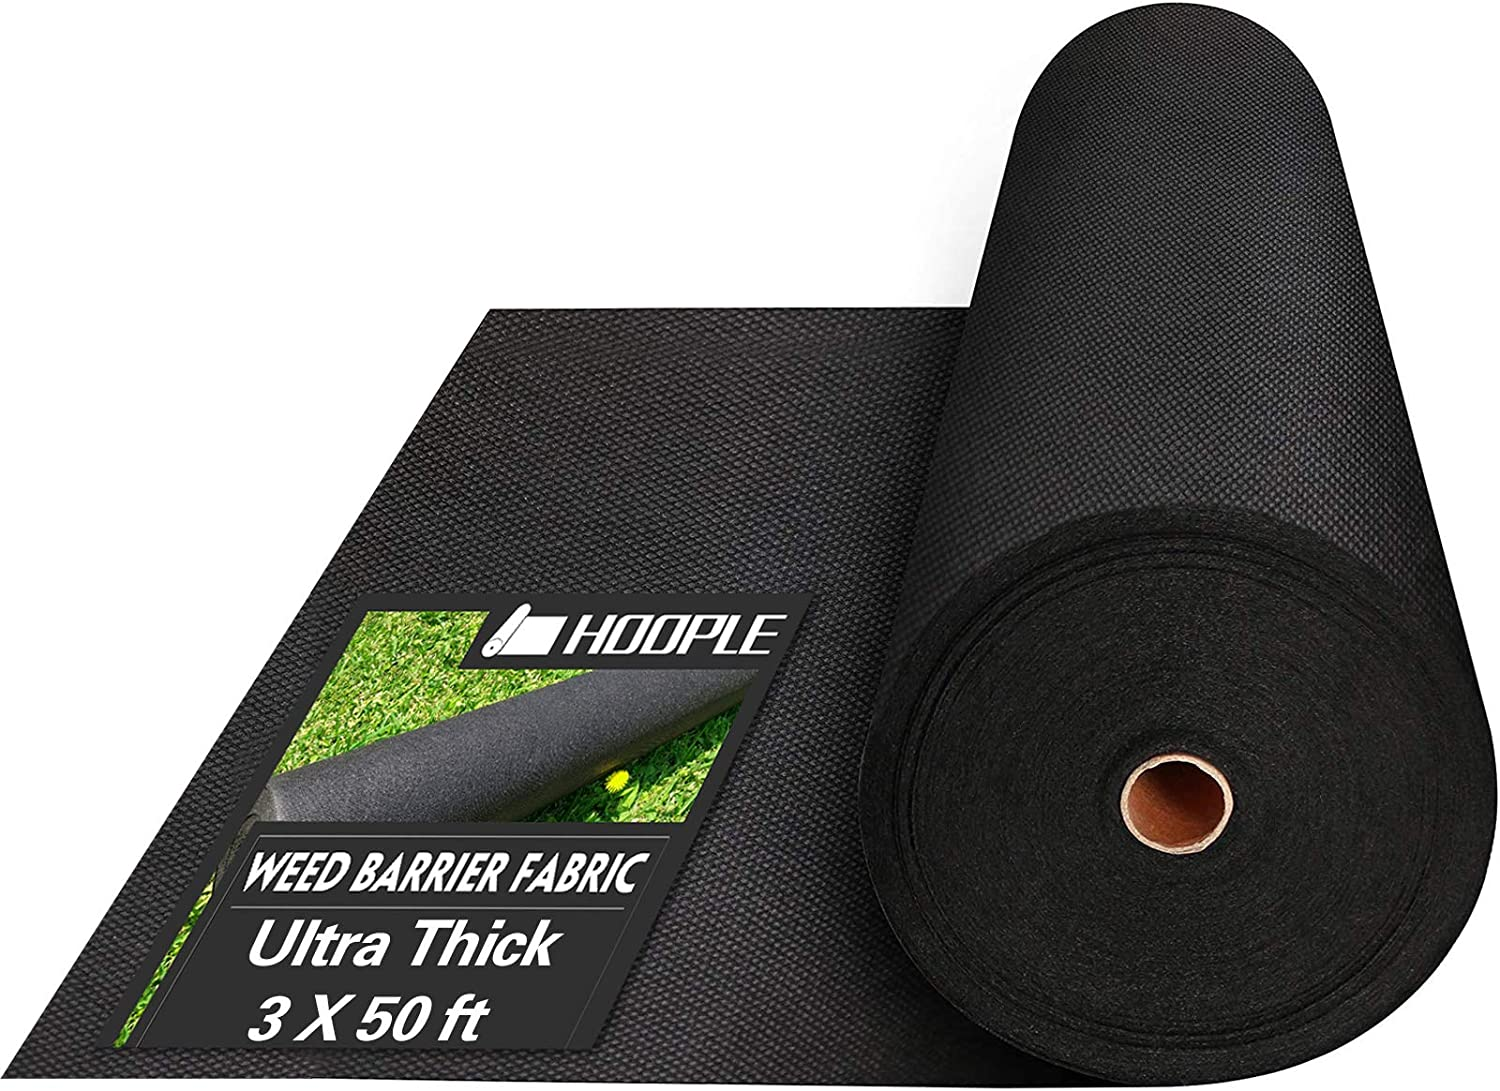 HOOPLE 3 X 50ft Garden Landscape Fabric, Premium Ground Cover Heavy Duty Commercial Gardening Mat, for Flower Bed, Mulch, Pavers, Edging, Garden Stakes. Ultra Thick, 3 x 50ft, Black